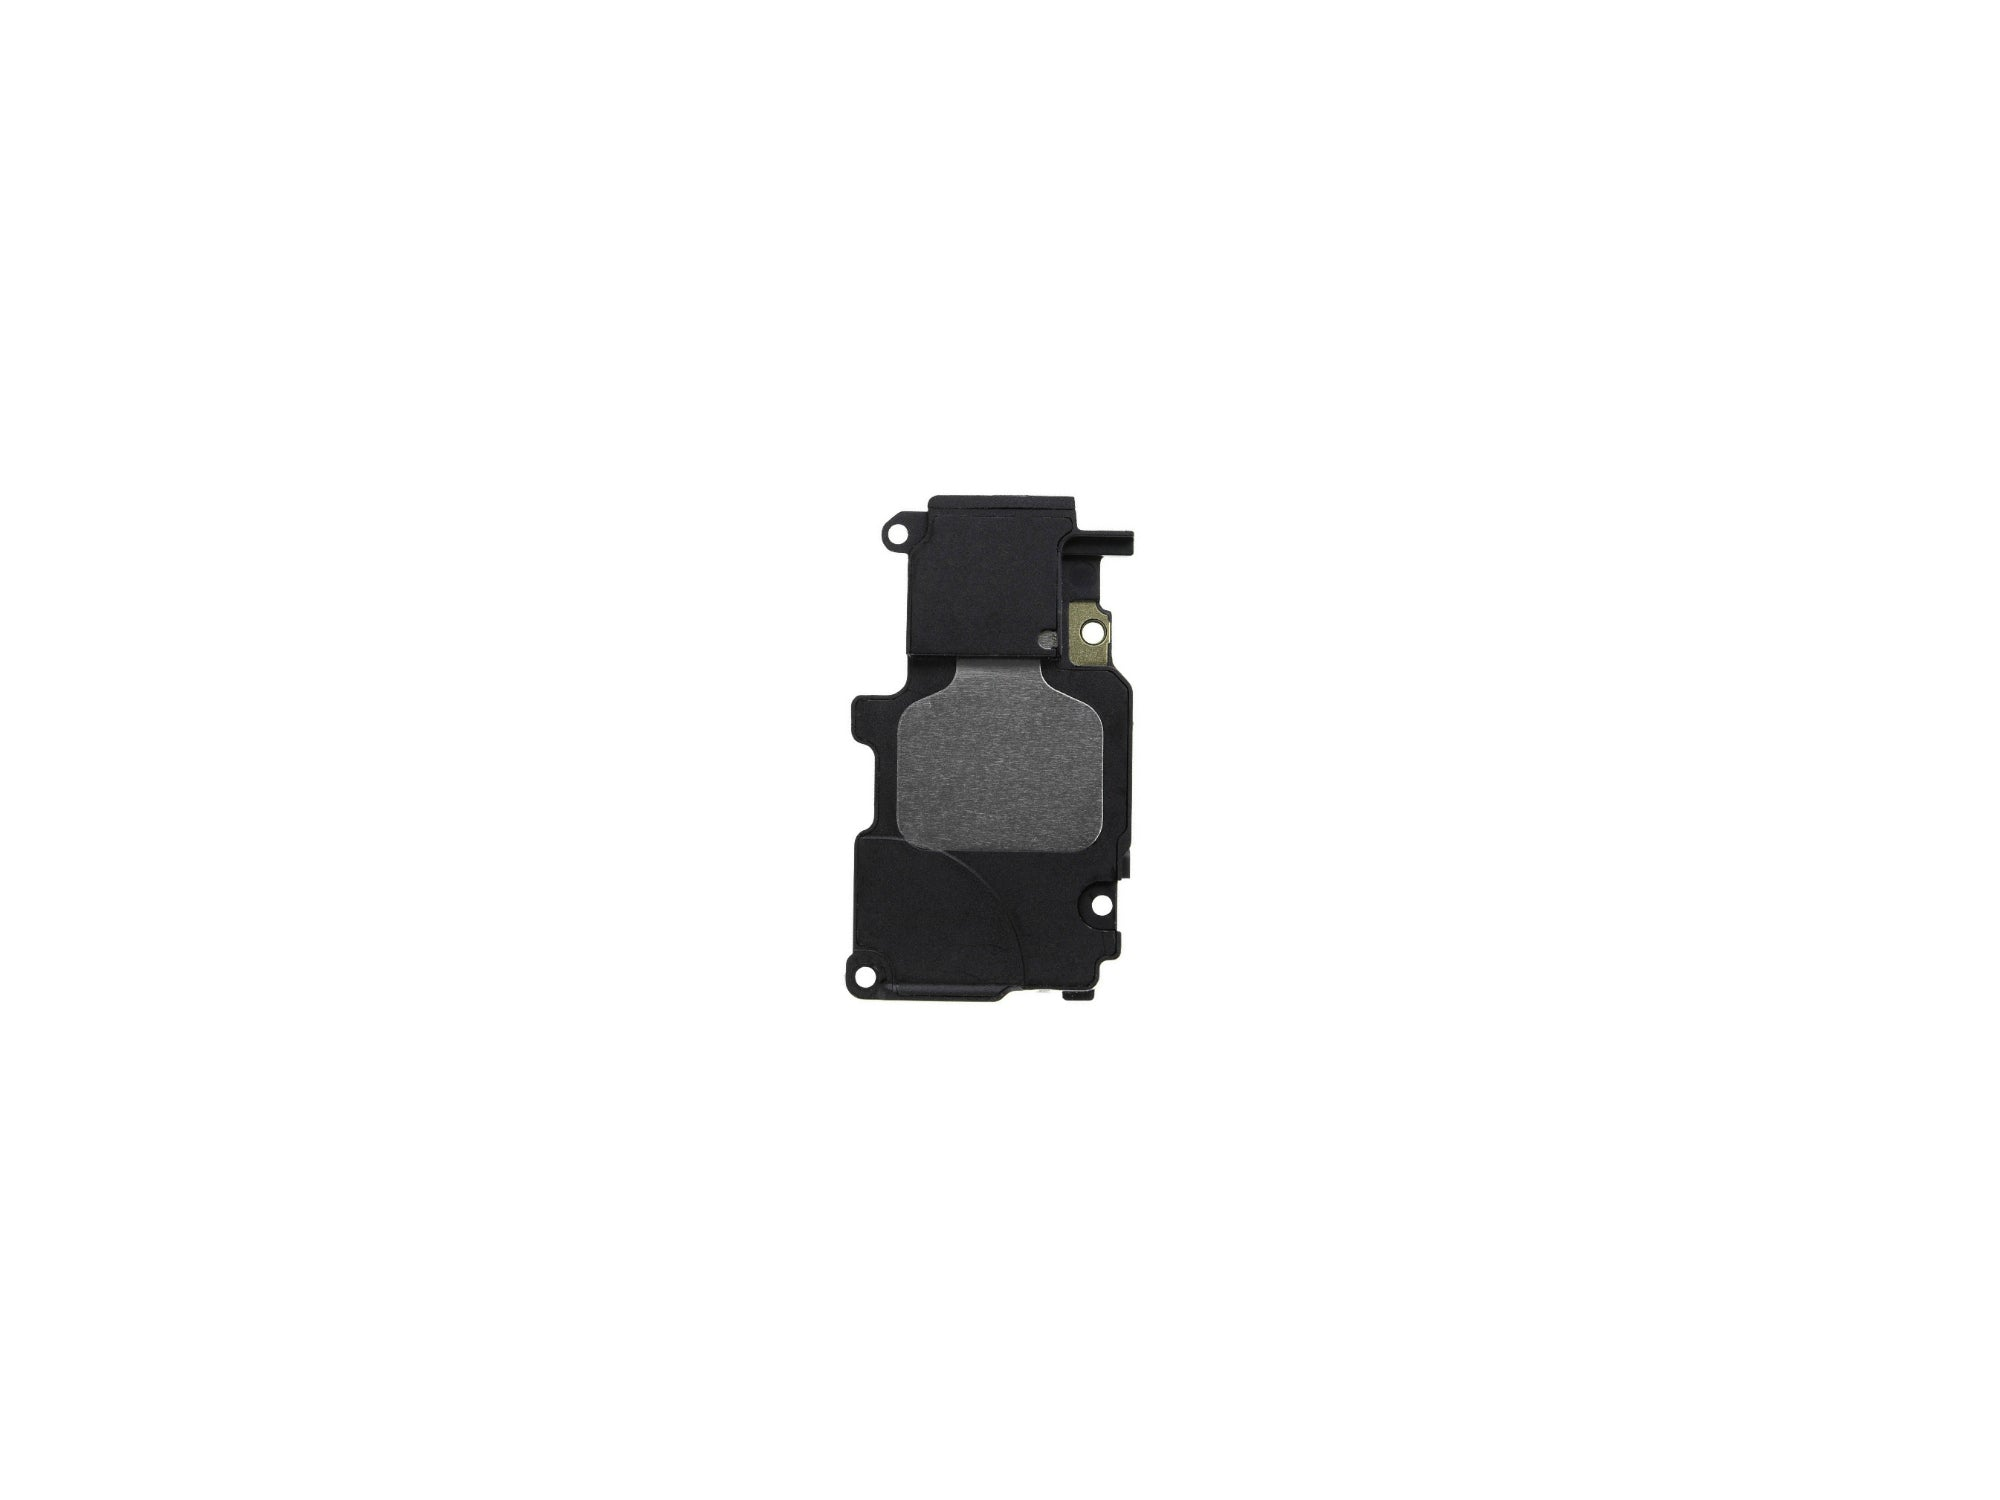 iPhone 6s Loudspeaker Replacement Kit